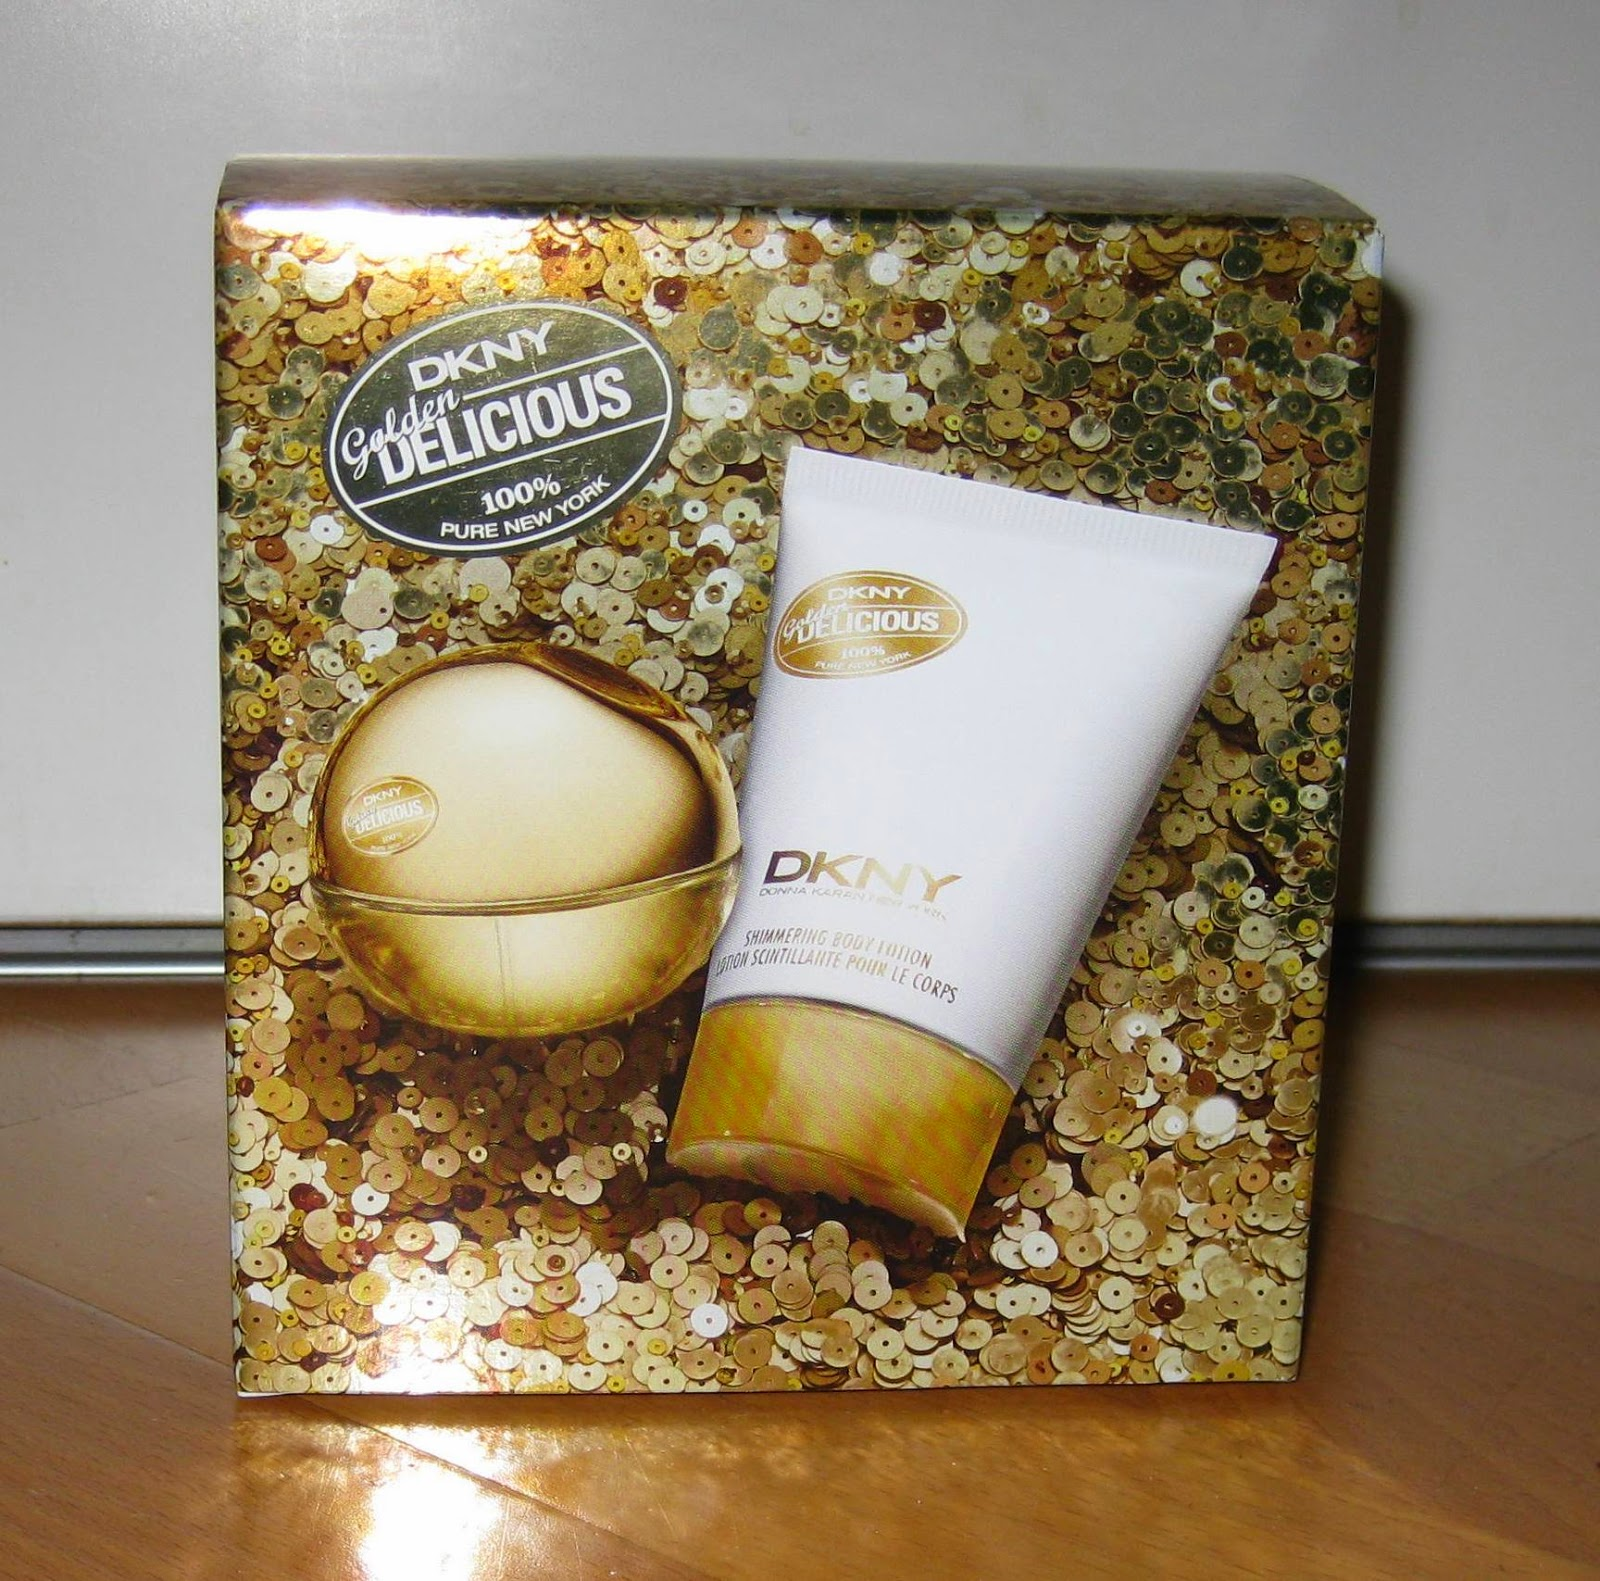 Beautyful Blog By Pampashase Review Dkny Golden Delicious